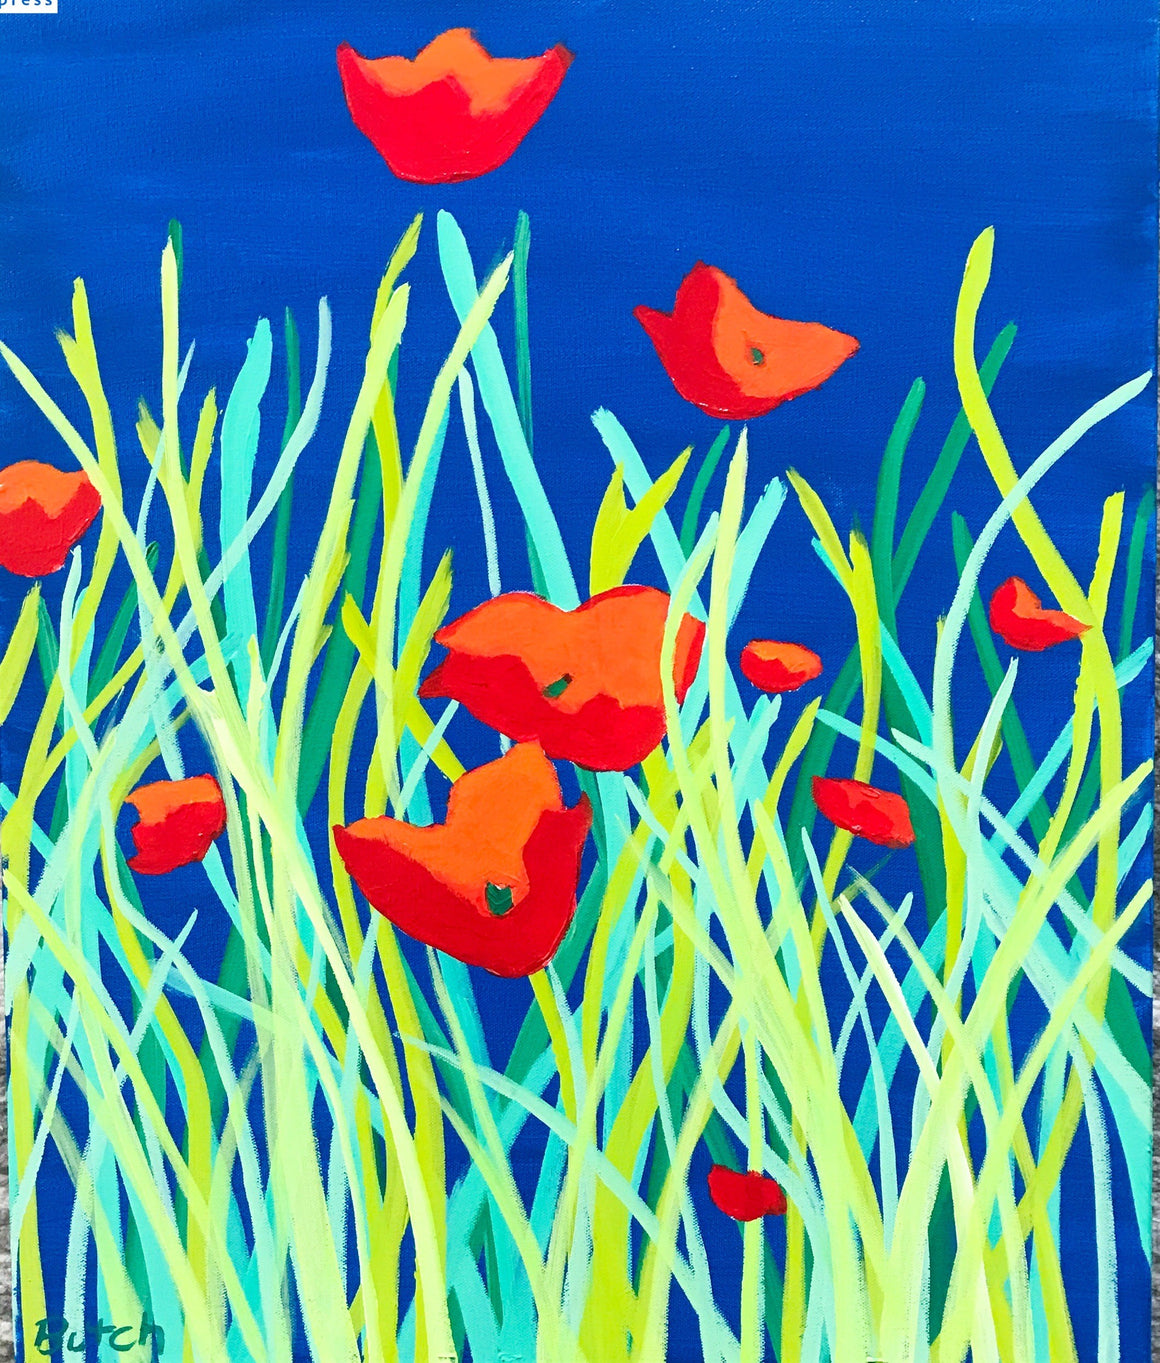 Ten Poppies, Original Painting by Butch McCarthy